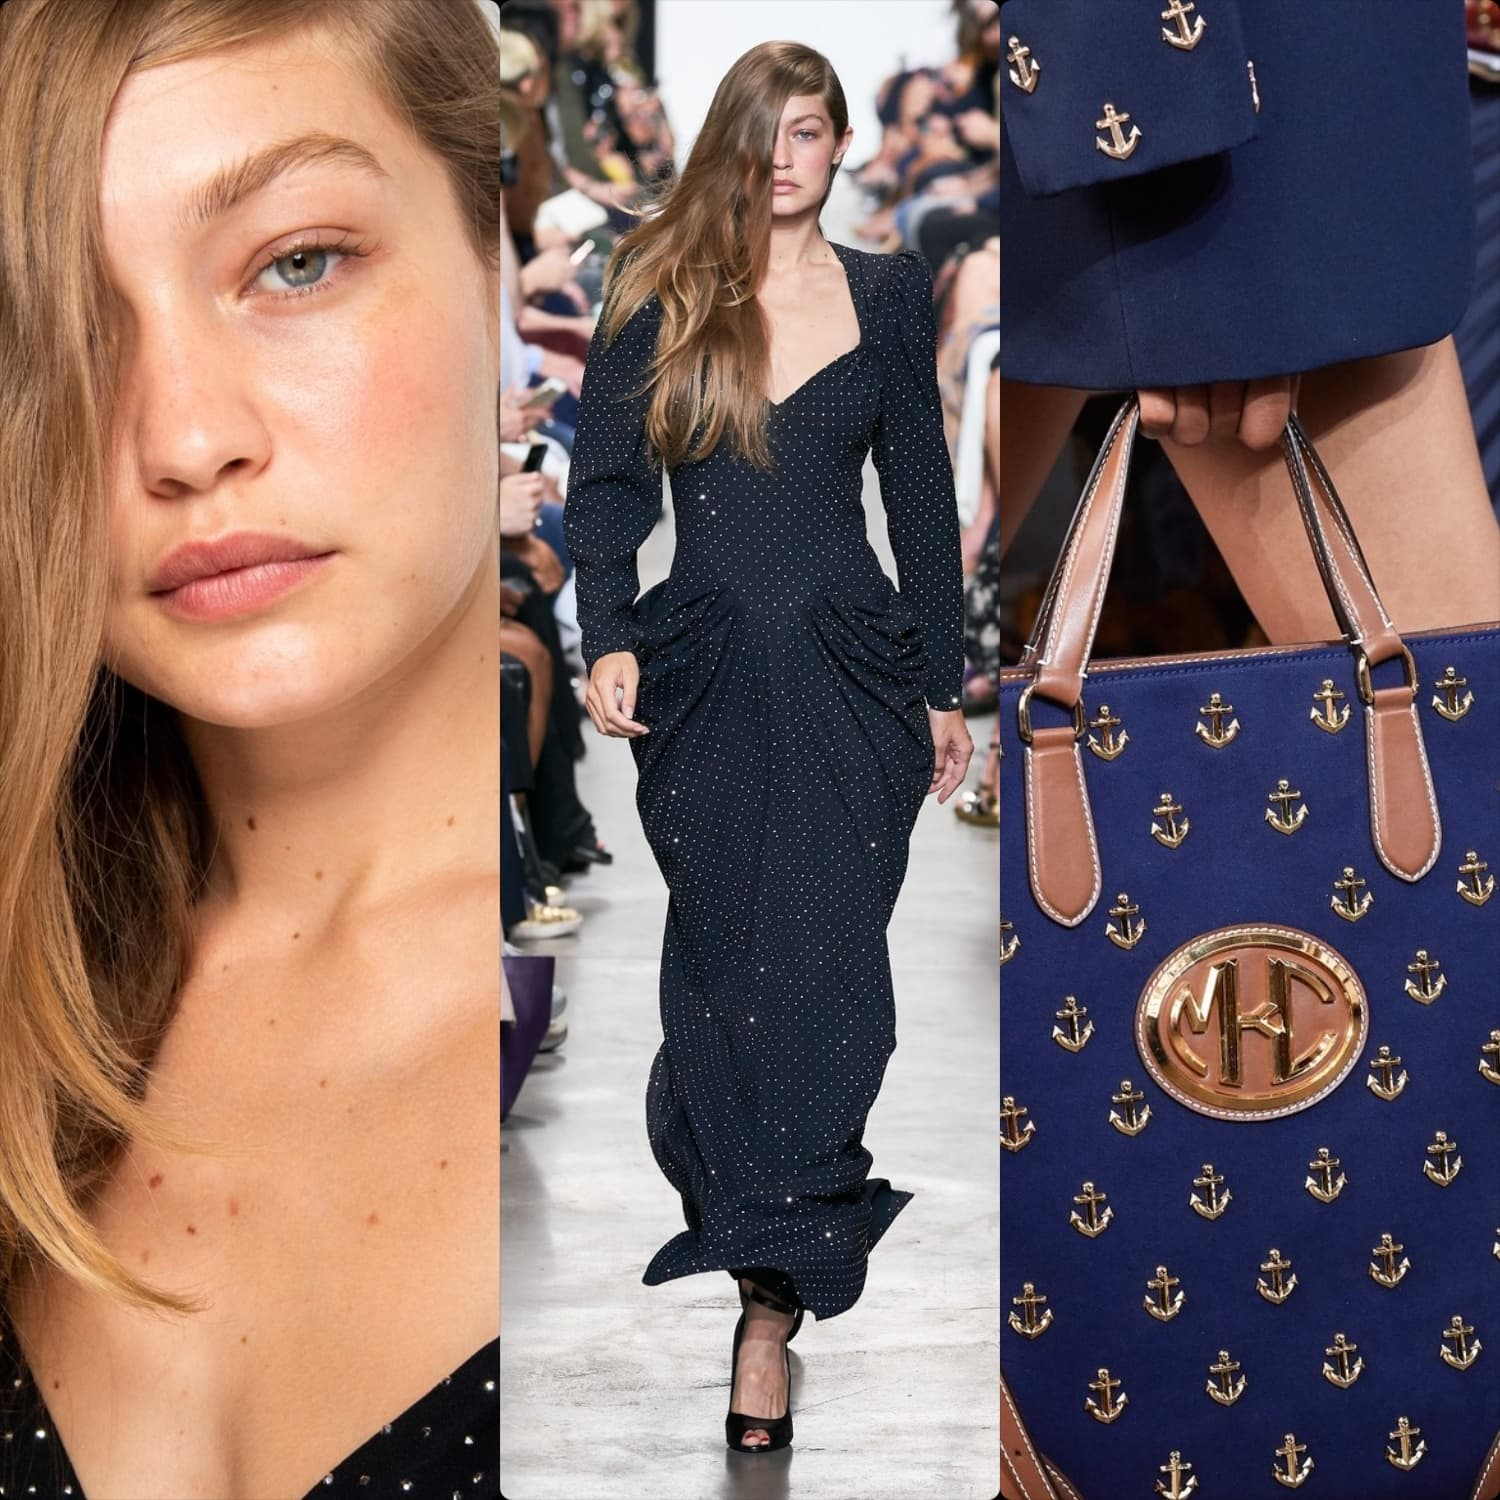 Michael Kors Spring Summer 2020 New York. Gigi Hadid. RUNWAY MAGAZINE ® Collections. RUNWAY NOW / RUNWAY NEW